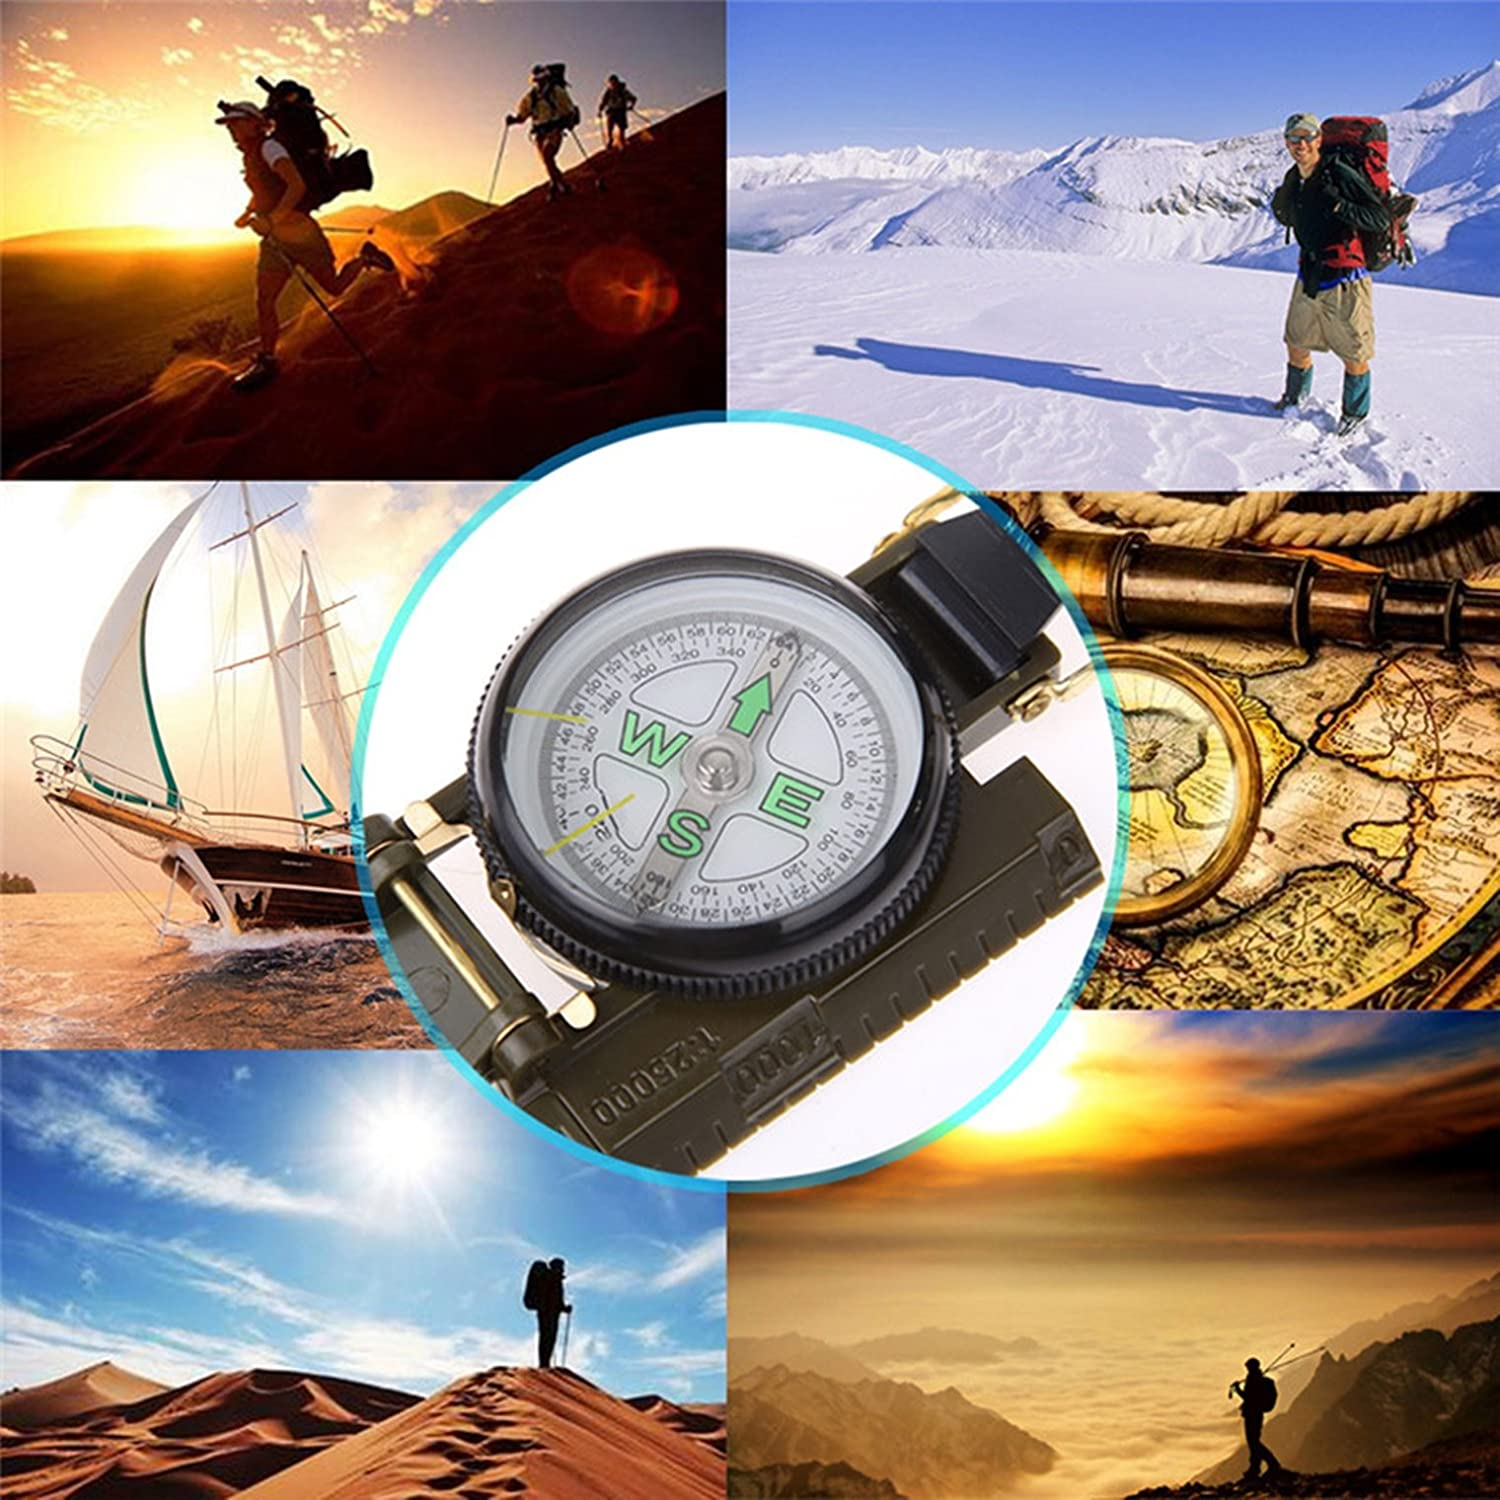 1 Pack Army Green Folding Lens Compass Keychain Dashboard Dash Mount Boat Survival Emergency Life Military Illustrious Popular Outdoor Hiking Waterproof Whistle Backpack Geometry Map Guide Tools Kit